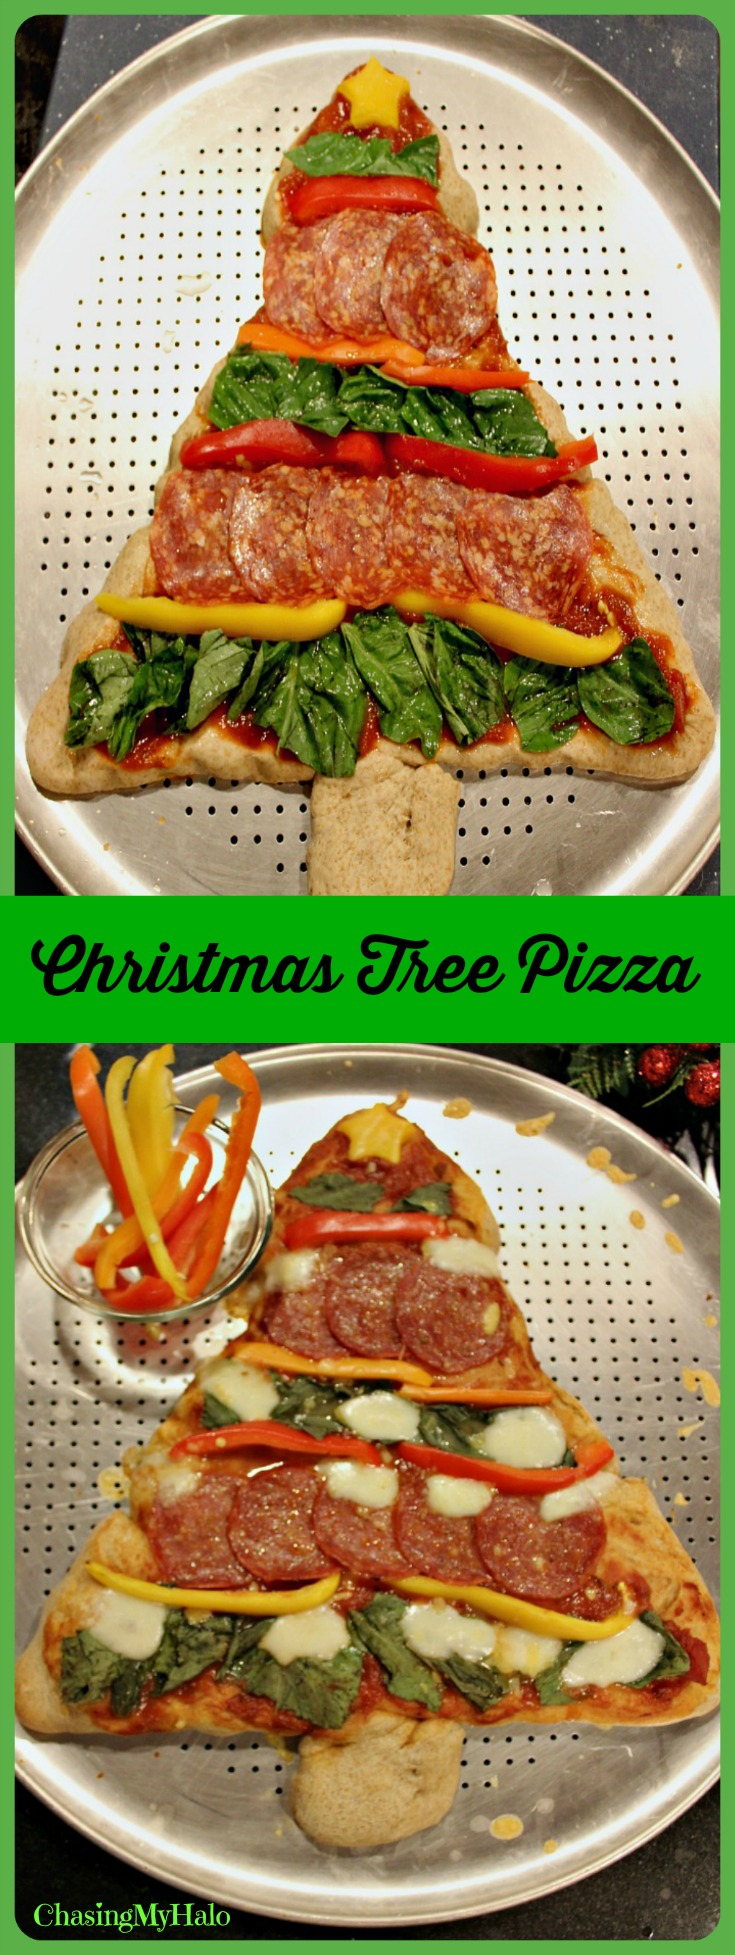 Christmas tree pizza dinner done merry and bright chasing my halo christmas tree pizza dinner done merry and bright forumfinder Choice Image